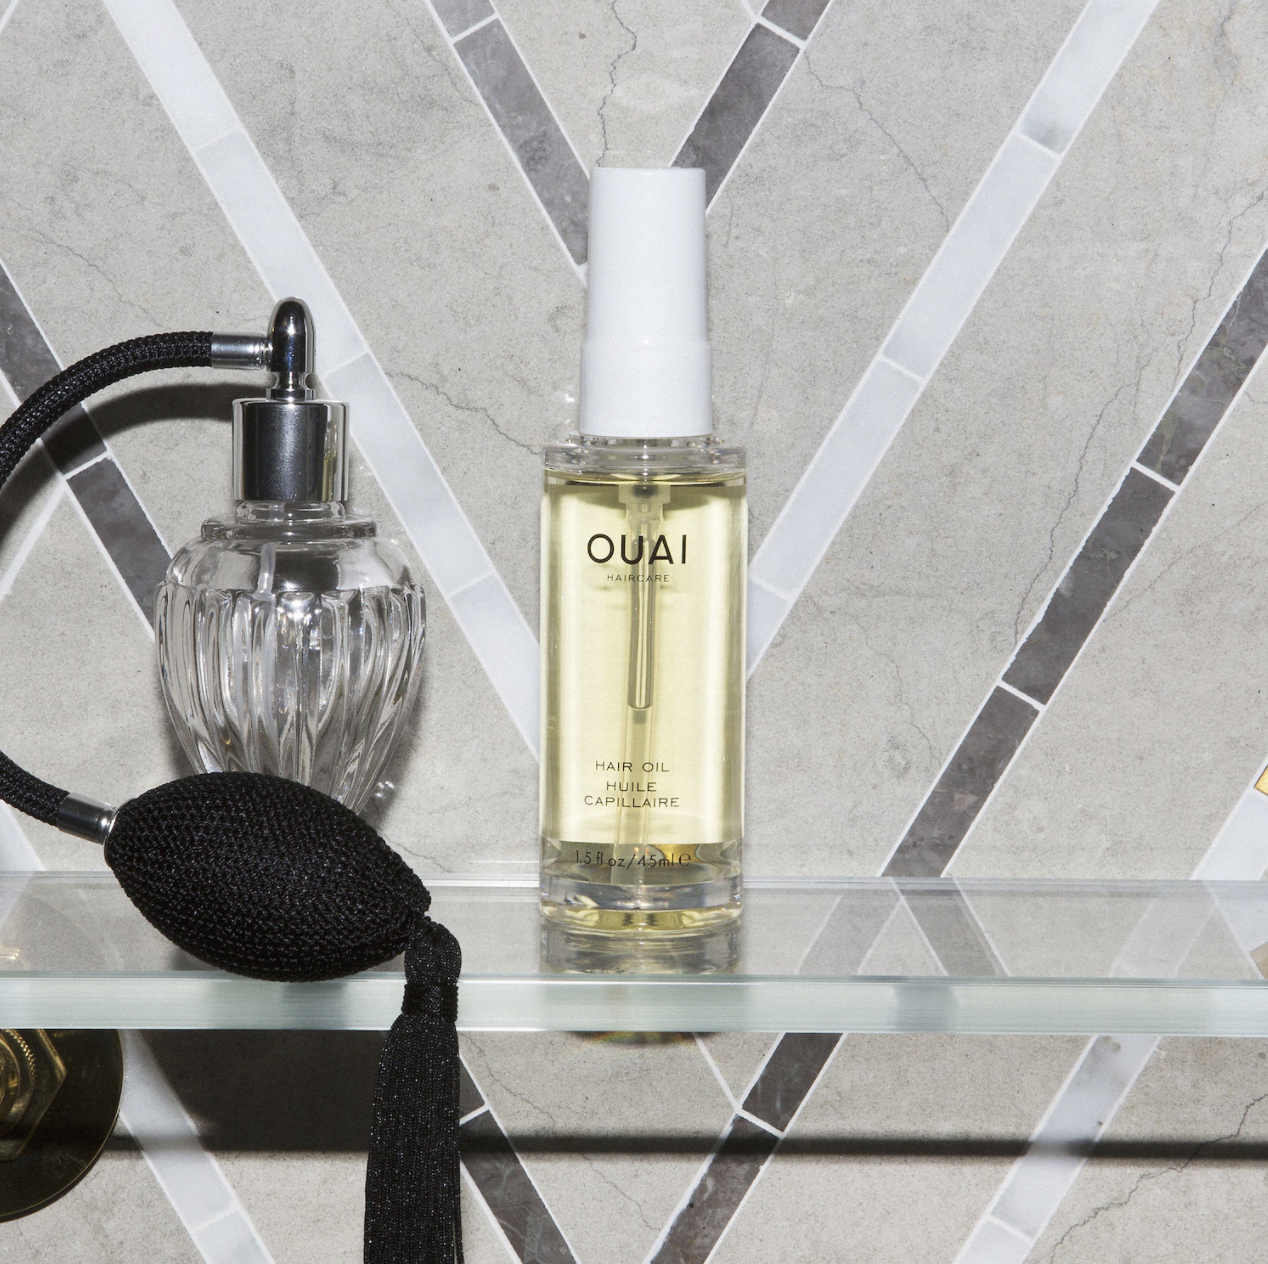 A bottle of the hair oil on a flat surface